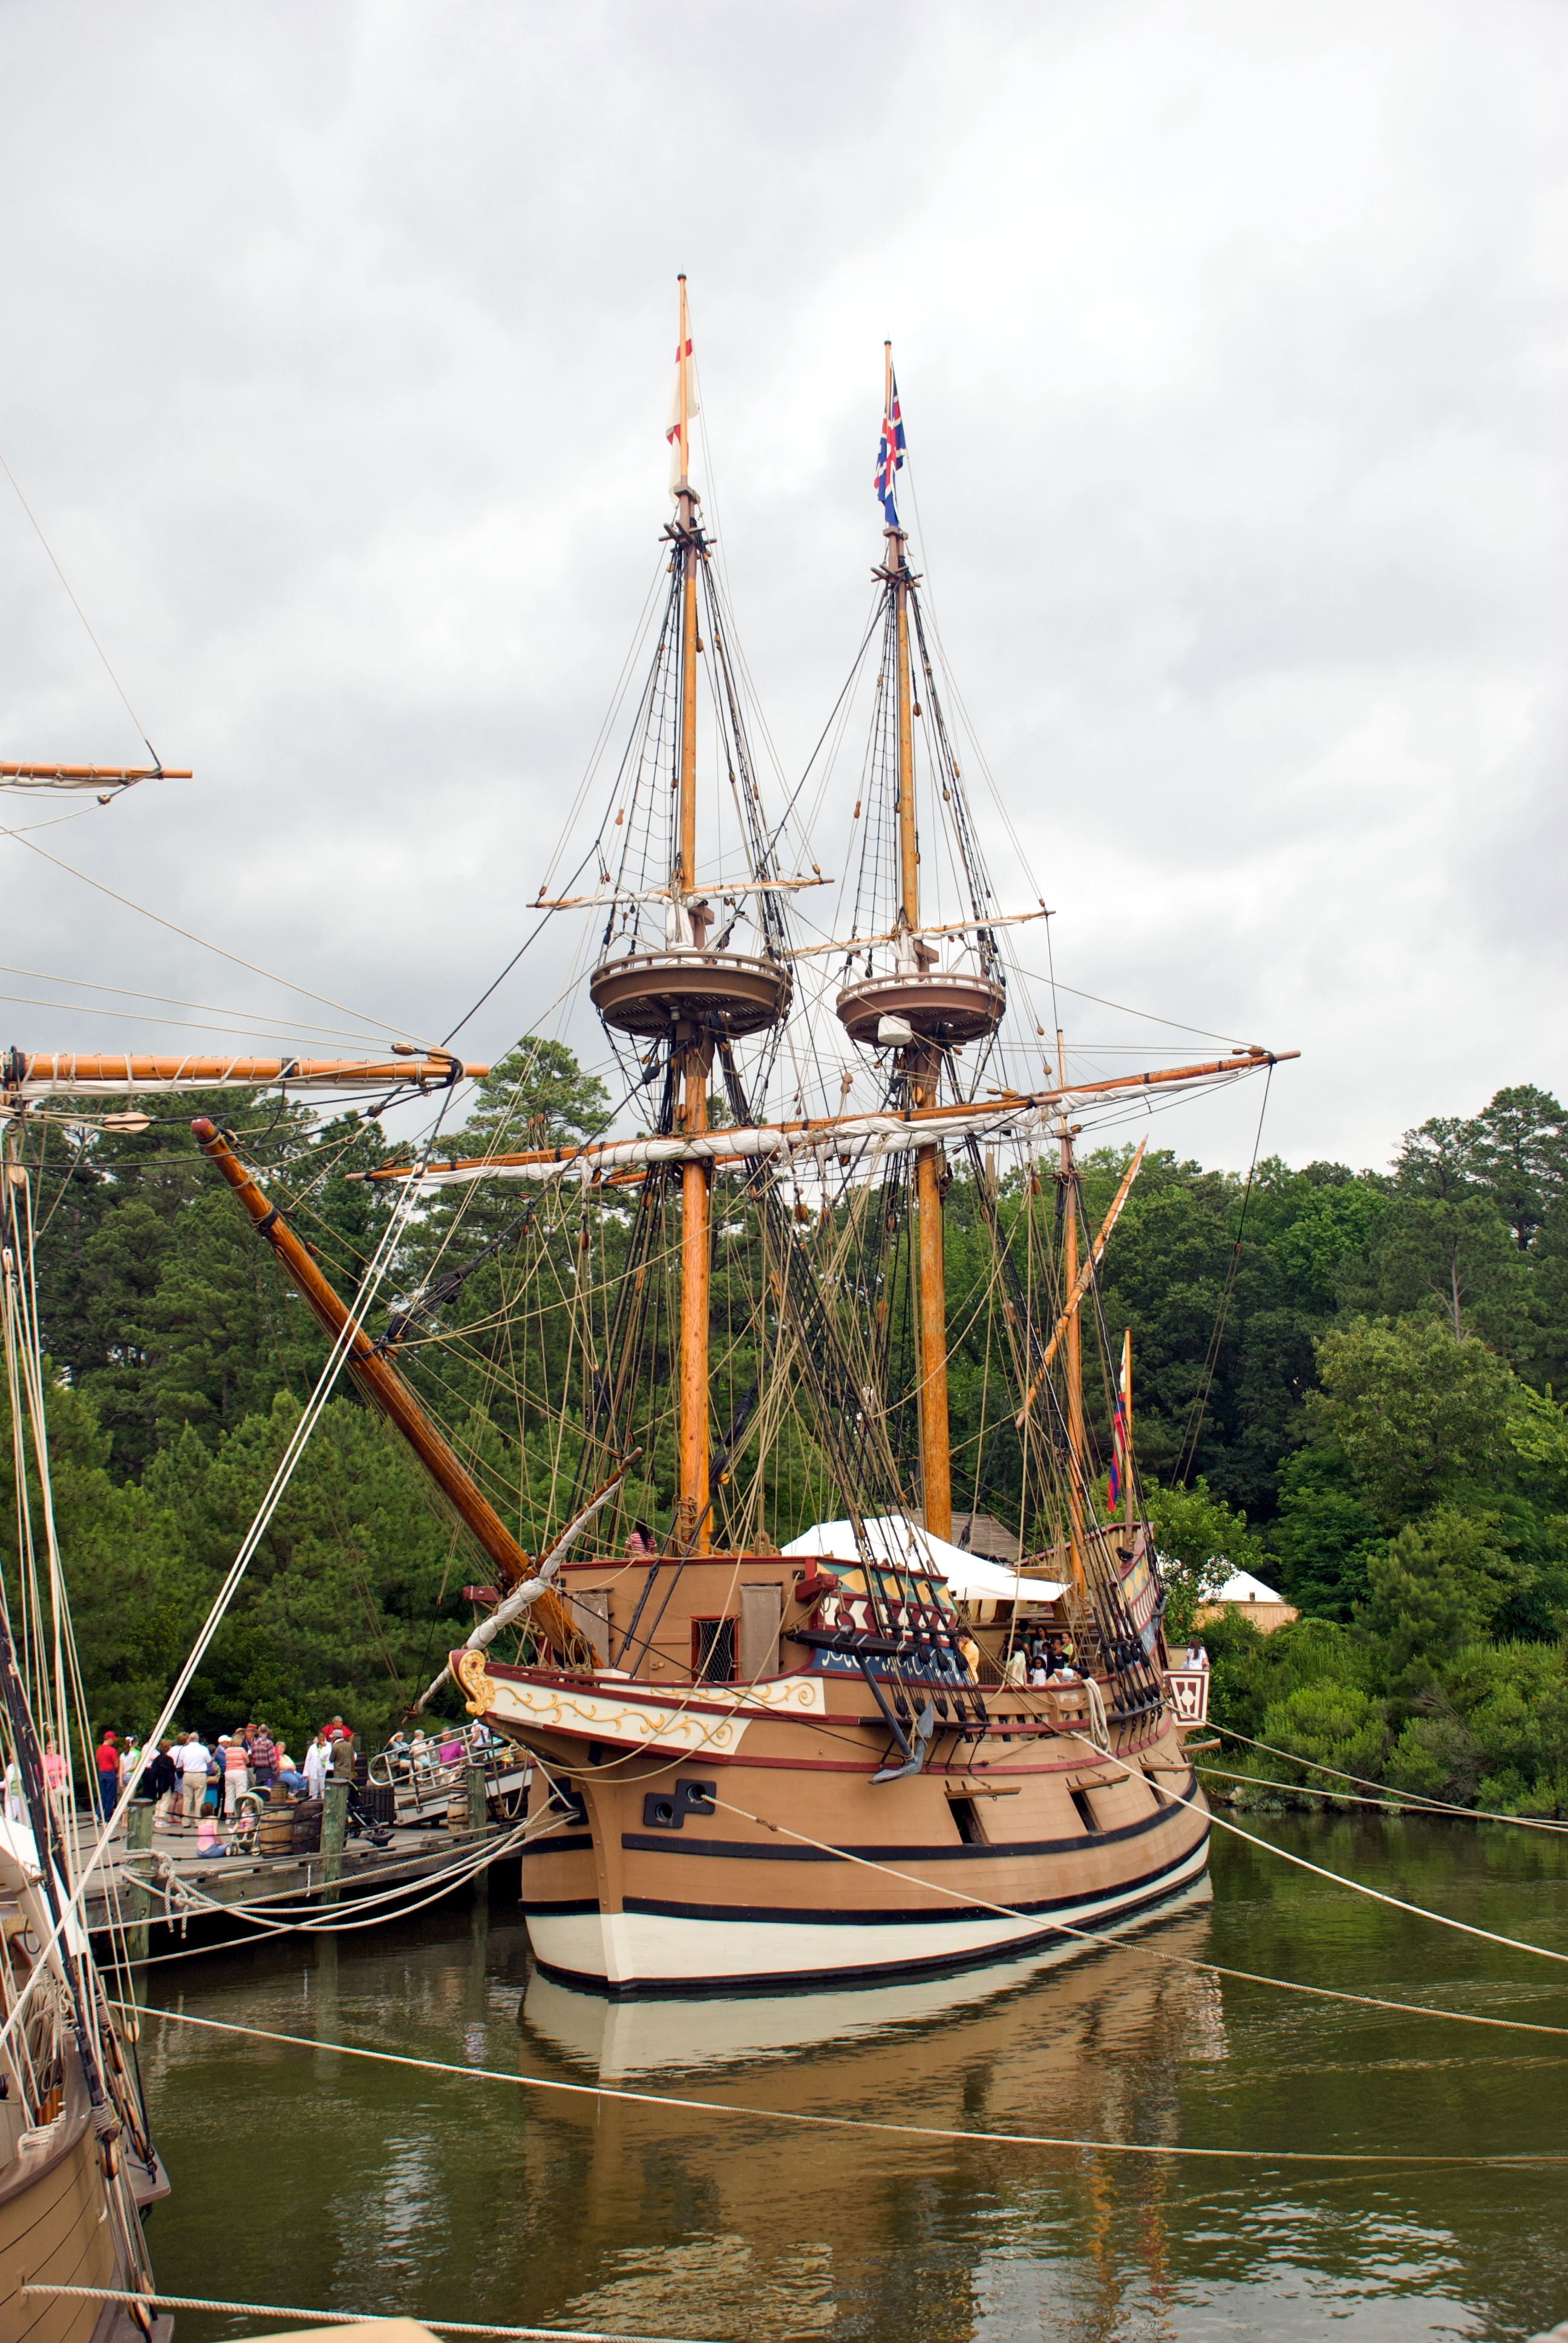 Replica ship Susan Constant in port at Jamestown Settlement by Warfieldian on Wikimedia Commons (CC BY-SA 3.0)